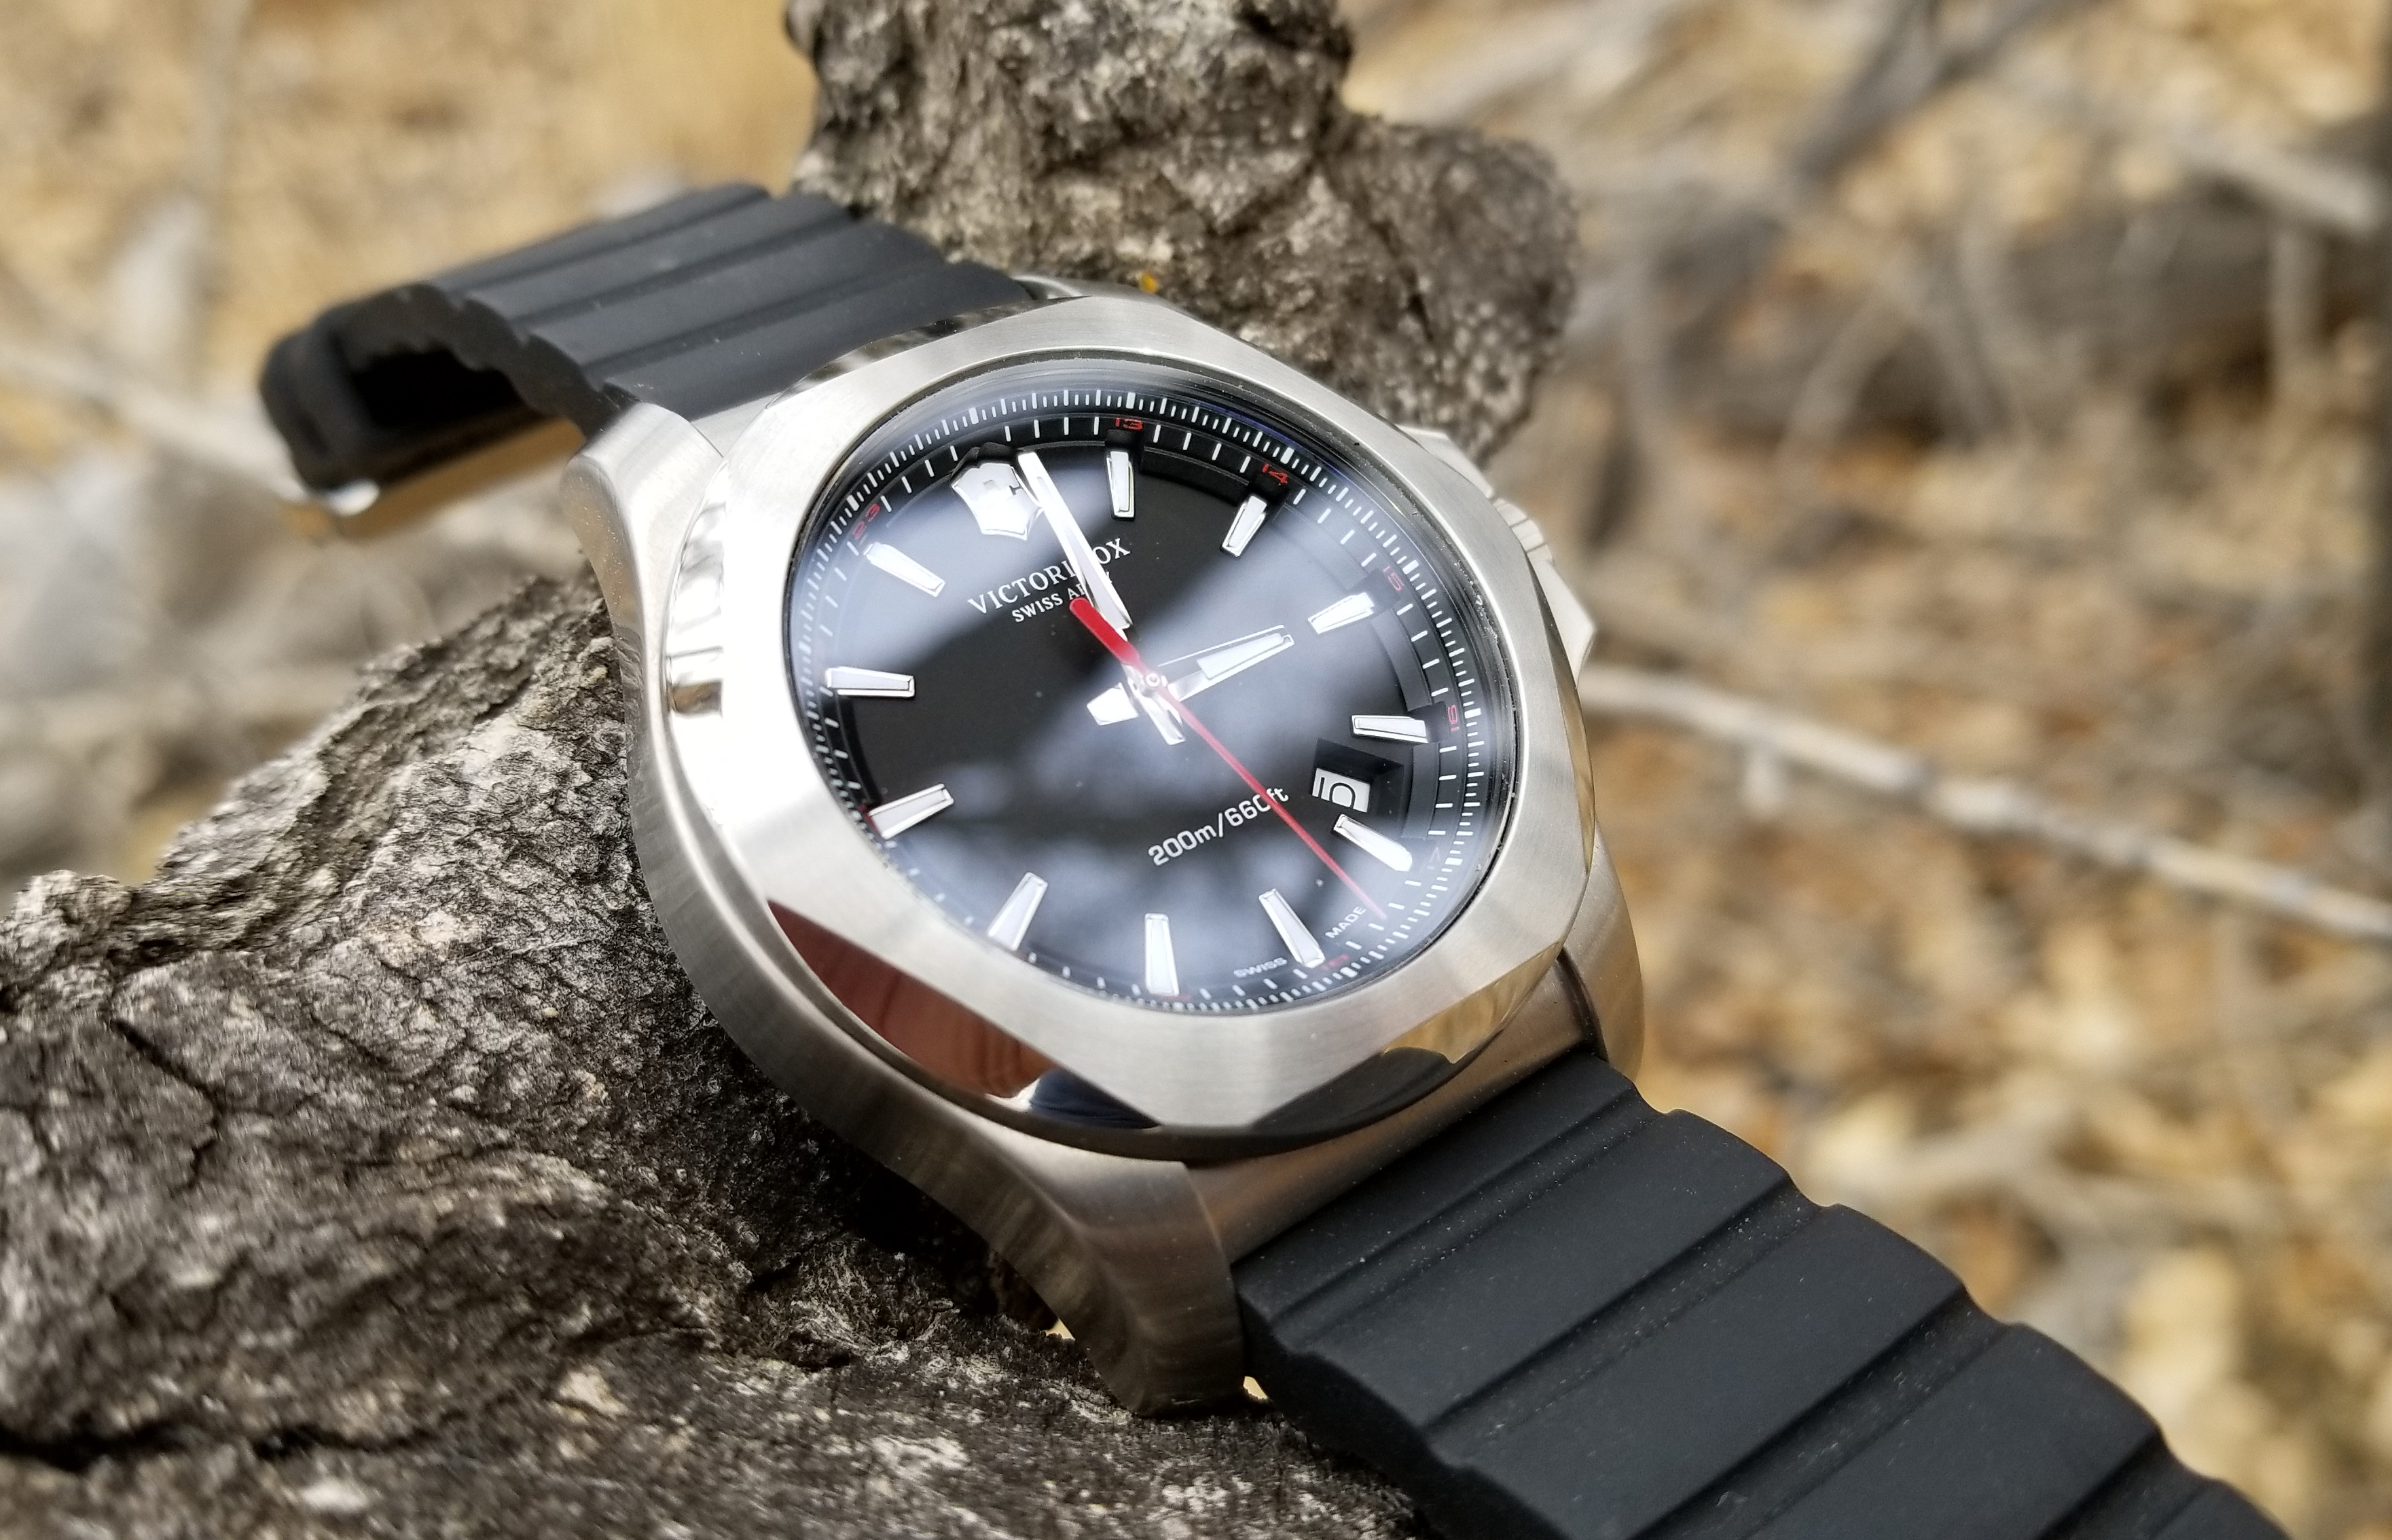 watches wired led inox victor review night photo vision watch victorinox